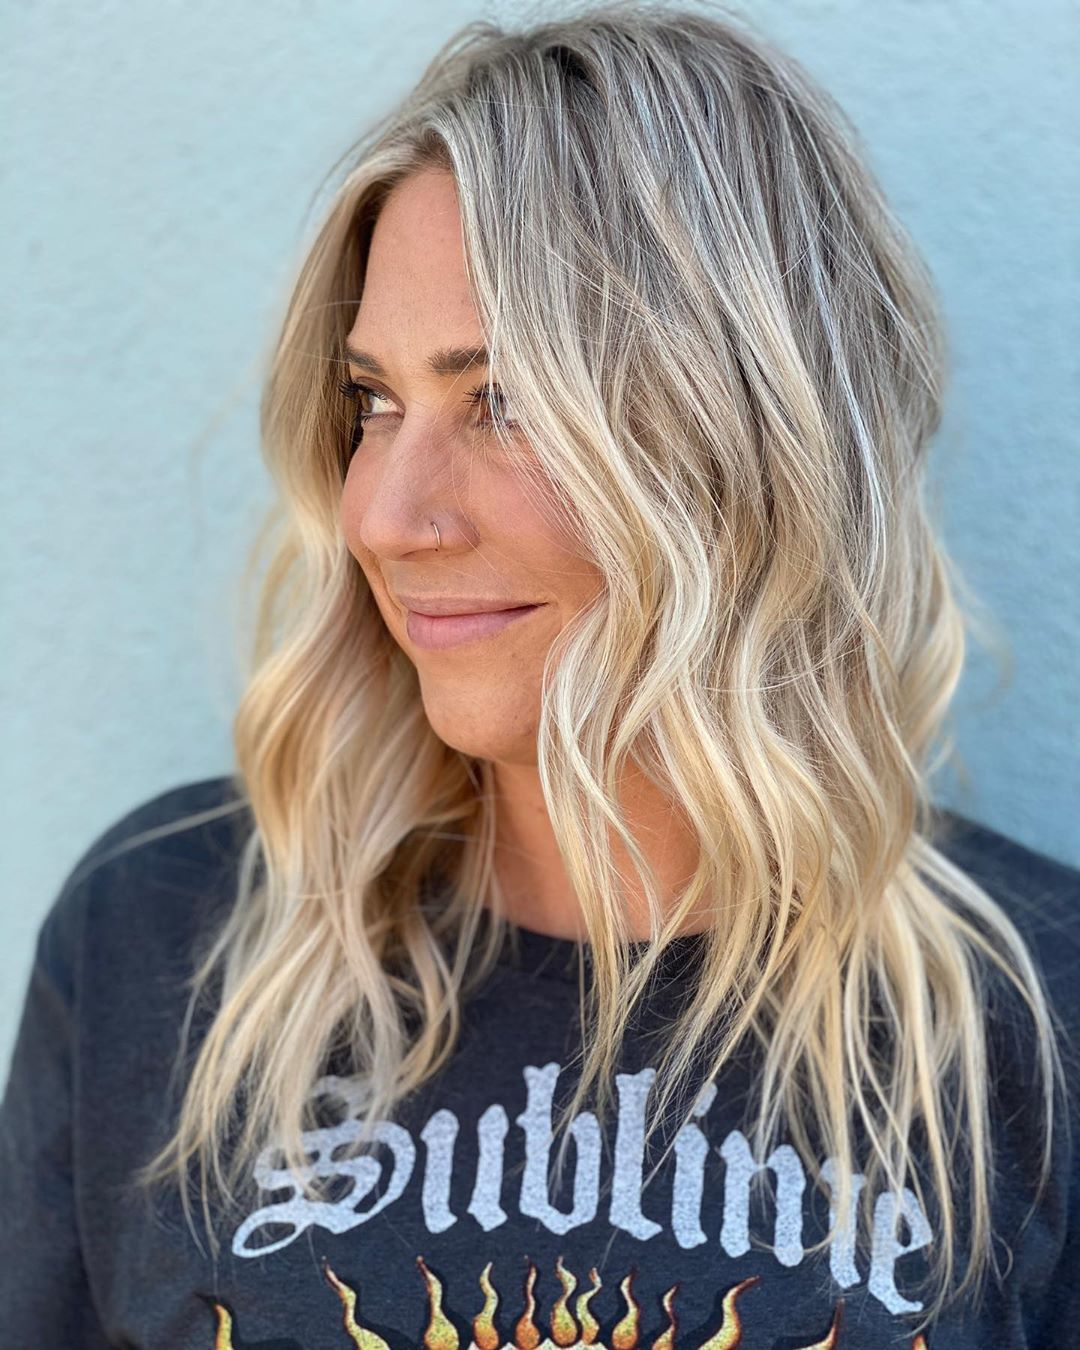 Isn't she so stinkin' cute?! I have the best clients! • • • • • #blonde #babylights #hairgoals #highlights #blondegoals #blondelife #livedinhair #livedinblonde #blowout #behindthechair #modernsalon #softblonde #allthingspretty #crafthairdresser #modernsalon #behindthechair #goldwell beautyobsessed #discoverunder100k #discoverunder10k #feelpretty #dailylifestyle #prettylittleinspo #getthelook #dailystyle #dailylivestyle #makeyousmilestyle #liveunscripted #theeverygirl #flashesofdelight #thehappyn